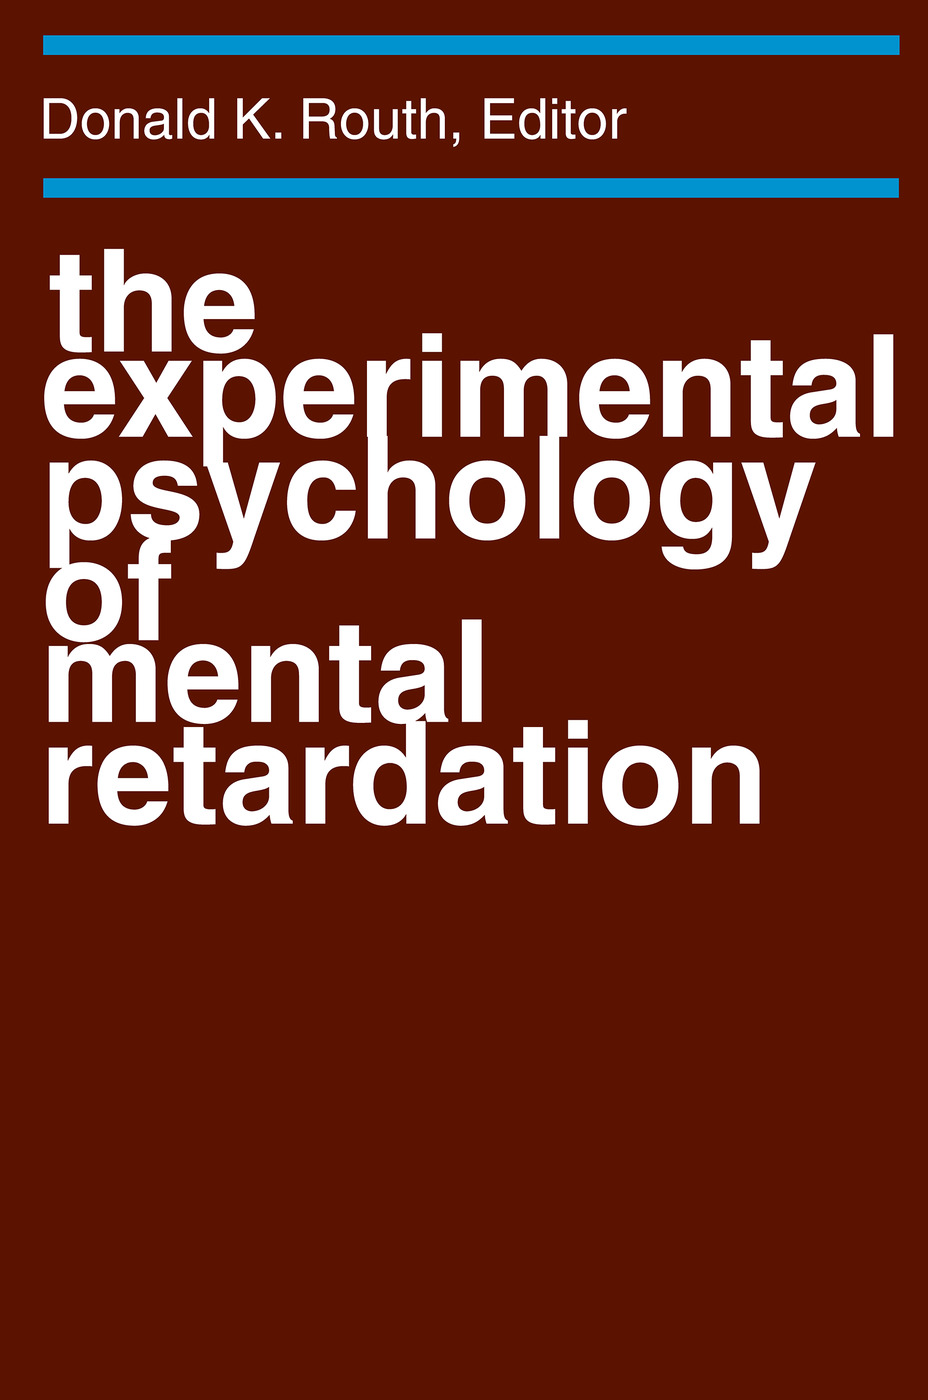 The Experimental Psychology of Mental Retardation